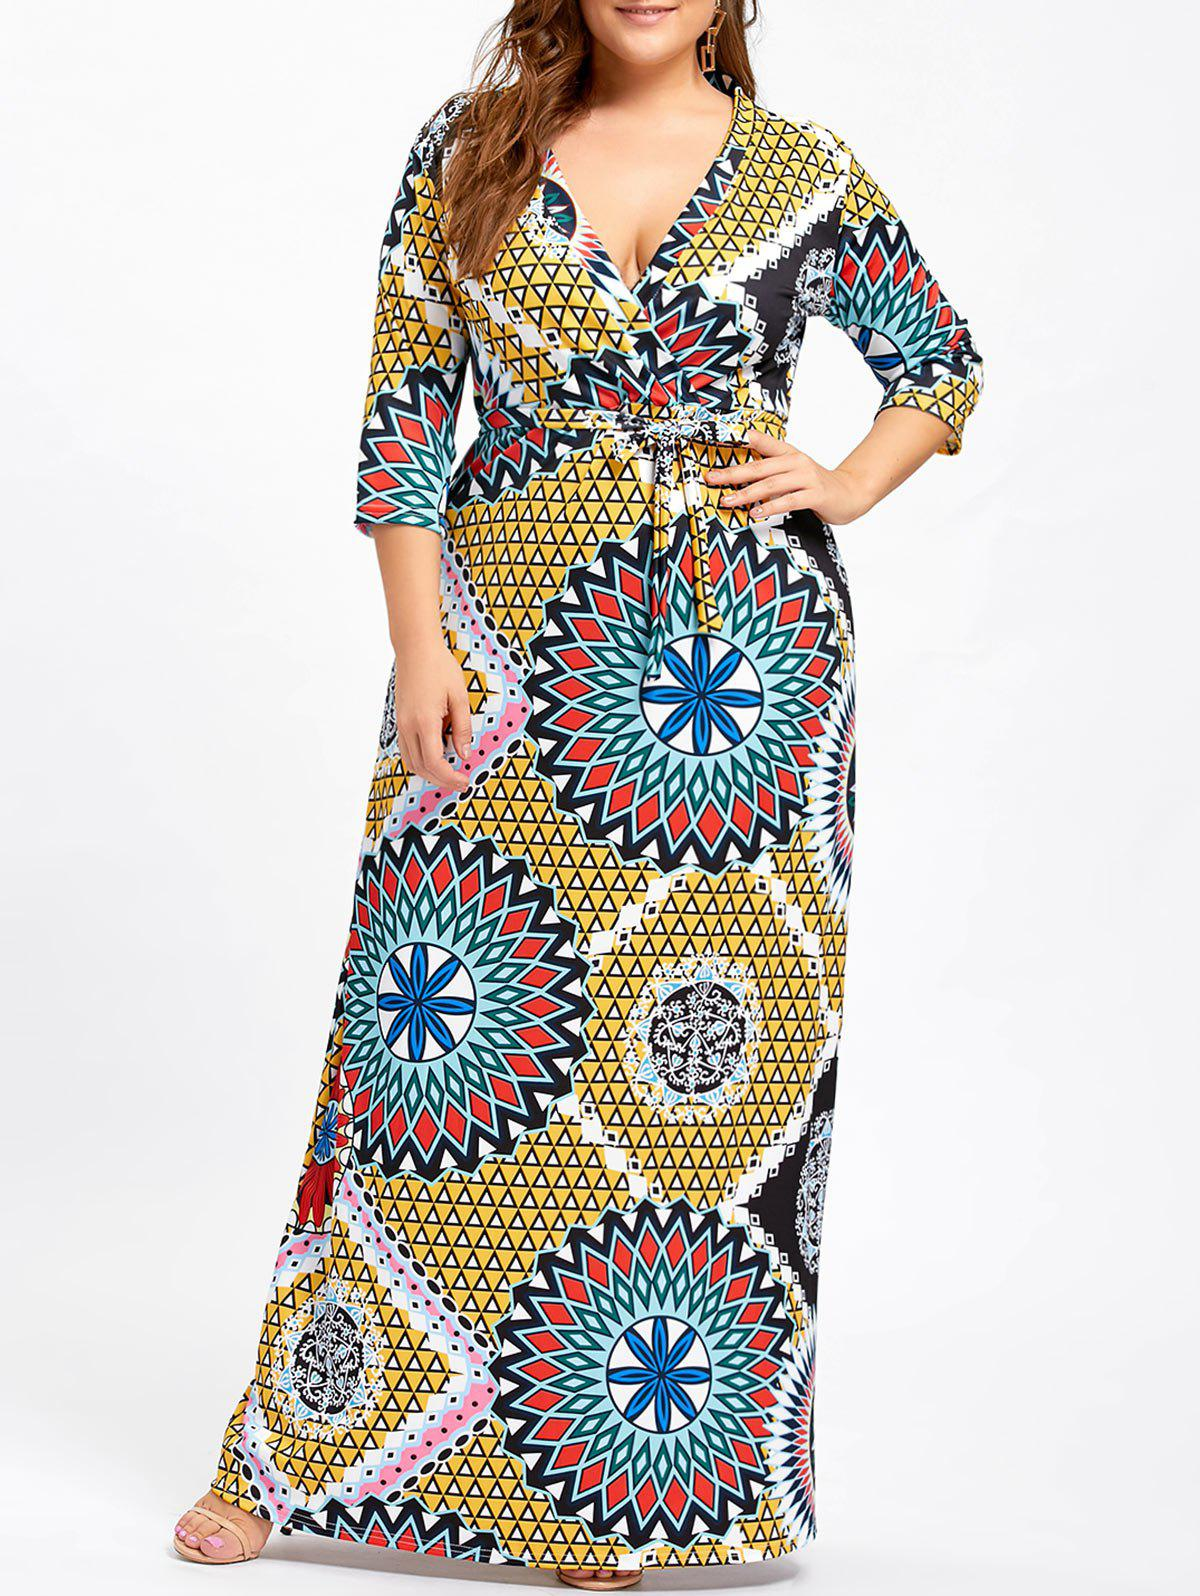 Plus Size Belted Surplice Floral DressWOMEN<br><br>Size: 5XL; Color: YELLOW; Style: Casual; Material: Cotton,Polyester; Silhouette: Sheath; Dresses Length: Floor-Length; Neckline: Plunging Neck; Sleeve Length: 3/4 Length Sleeves; Pattern Type: Floral; With Belt: Yes; Season: Fall,Spring; Weight: 0.5000kg; Package Contents: 1 x Dress  1 x Belt;